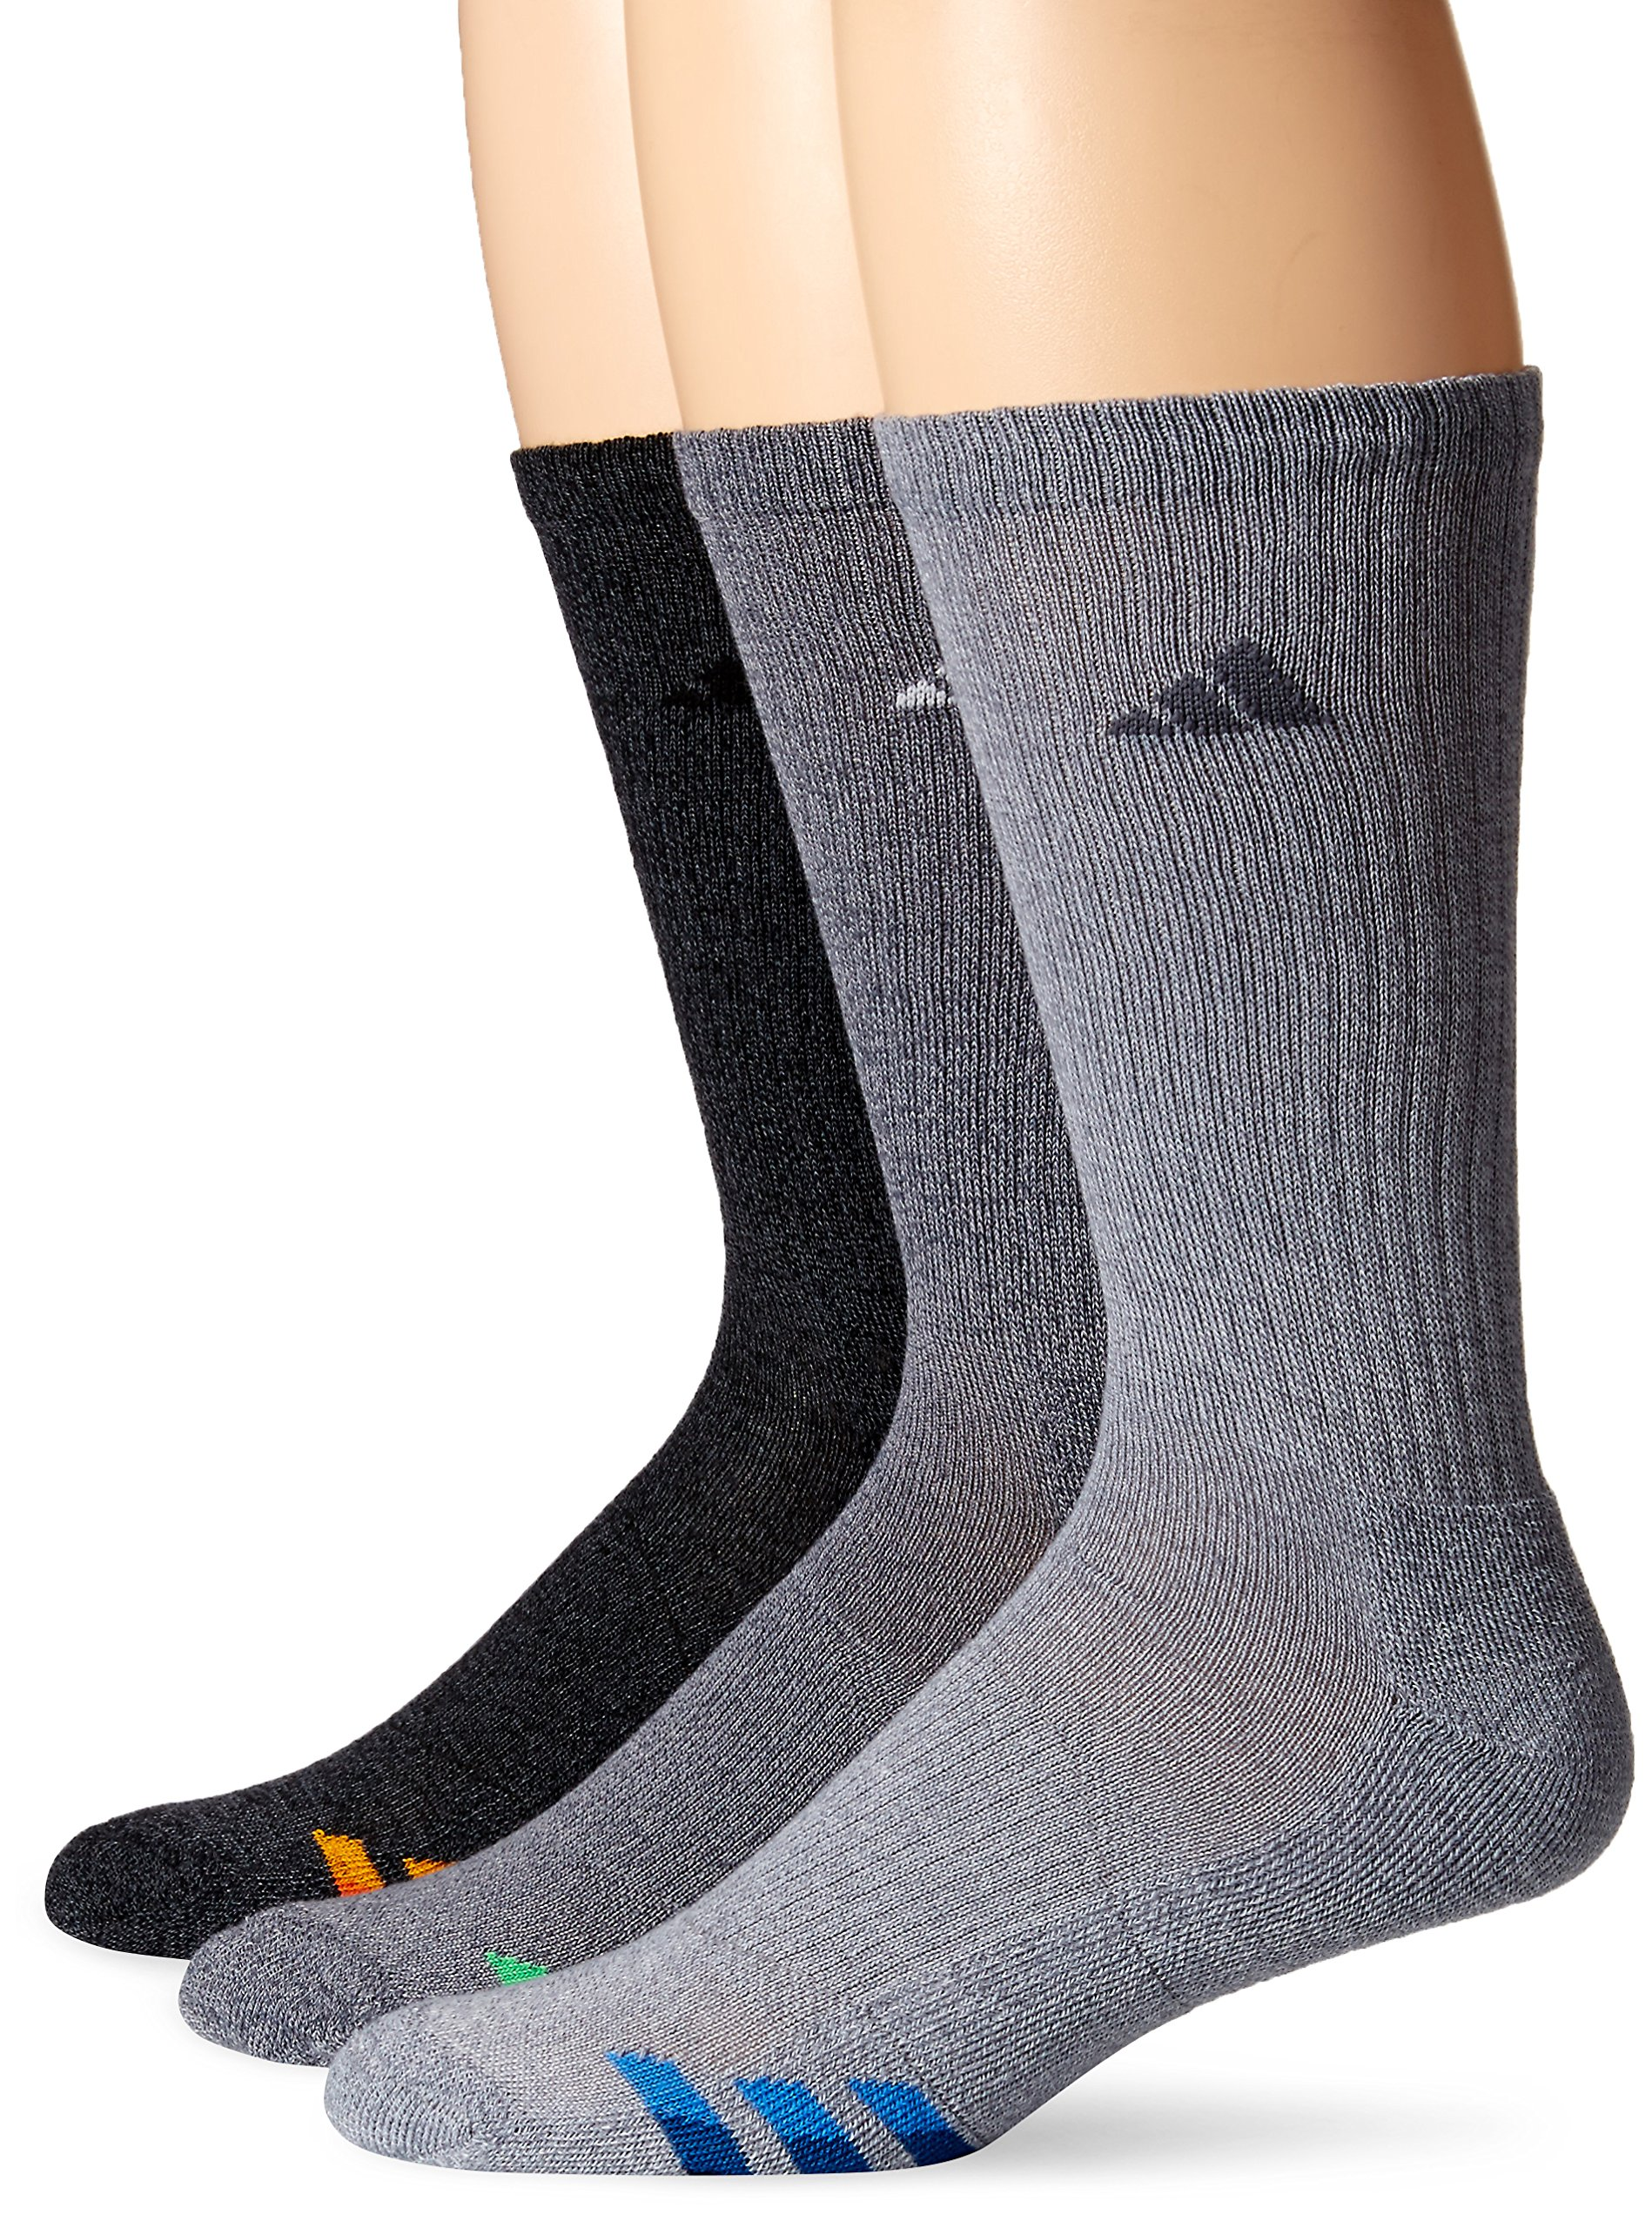 Xterra Paddle Boards >> adidas Men's Cushioned Color Crew Socks (3-Pack) | ExerciseN